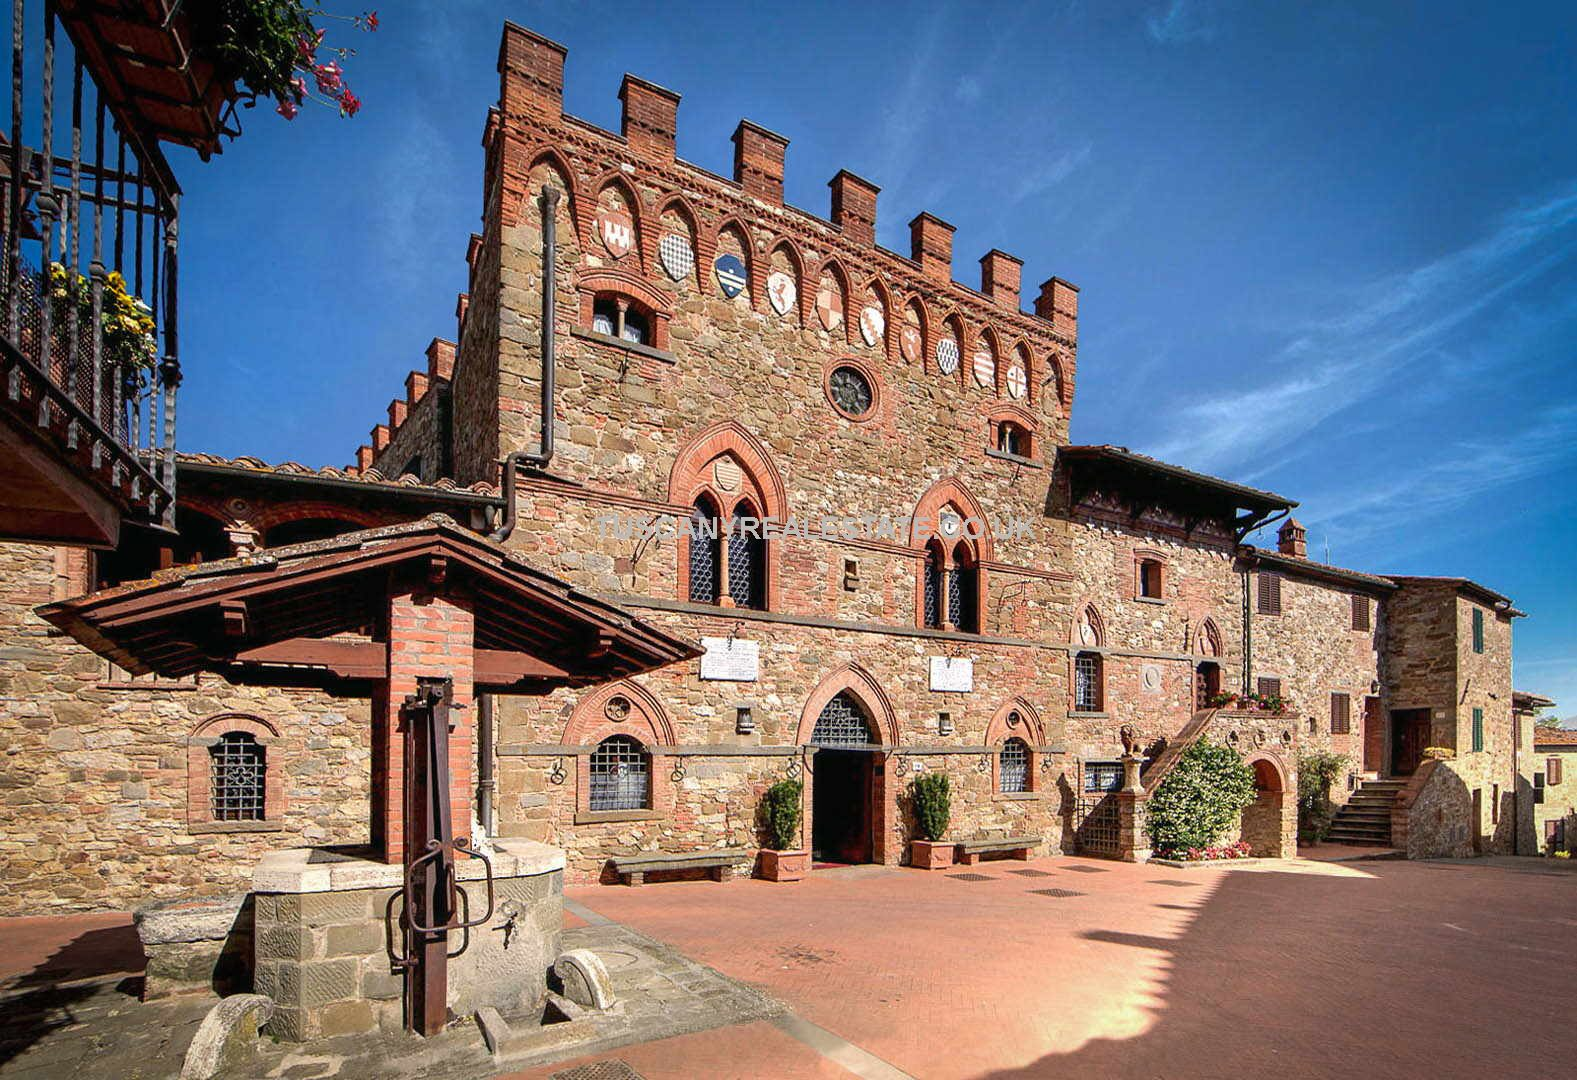 Historic medieval castle for sale in Tuscany